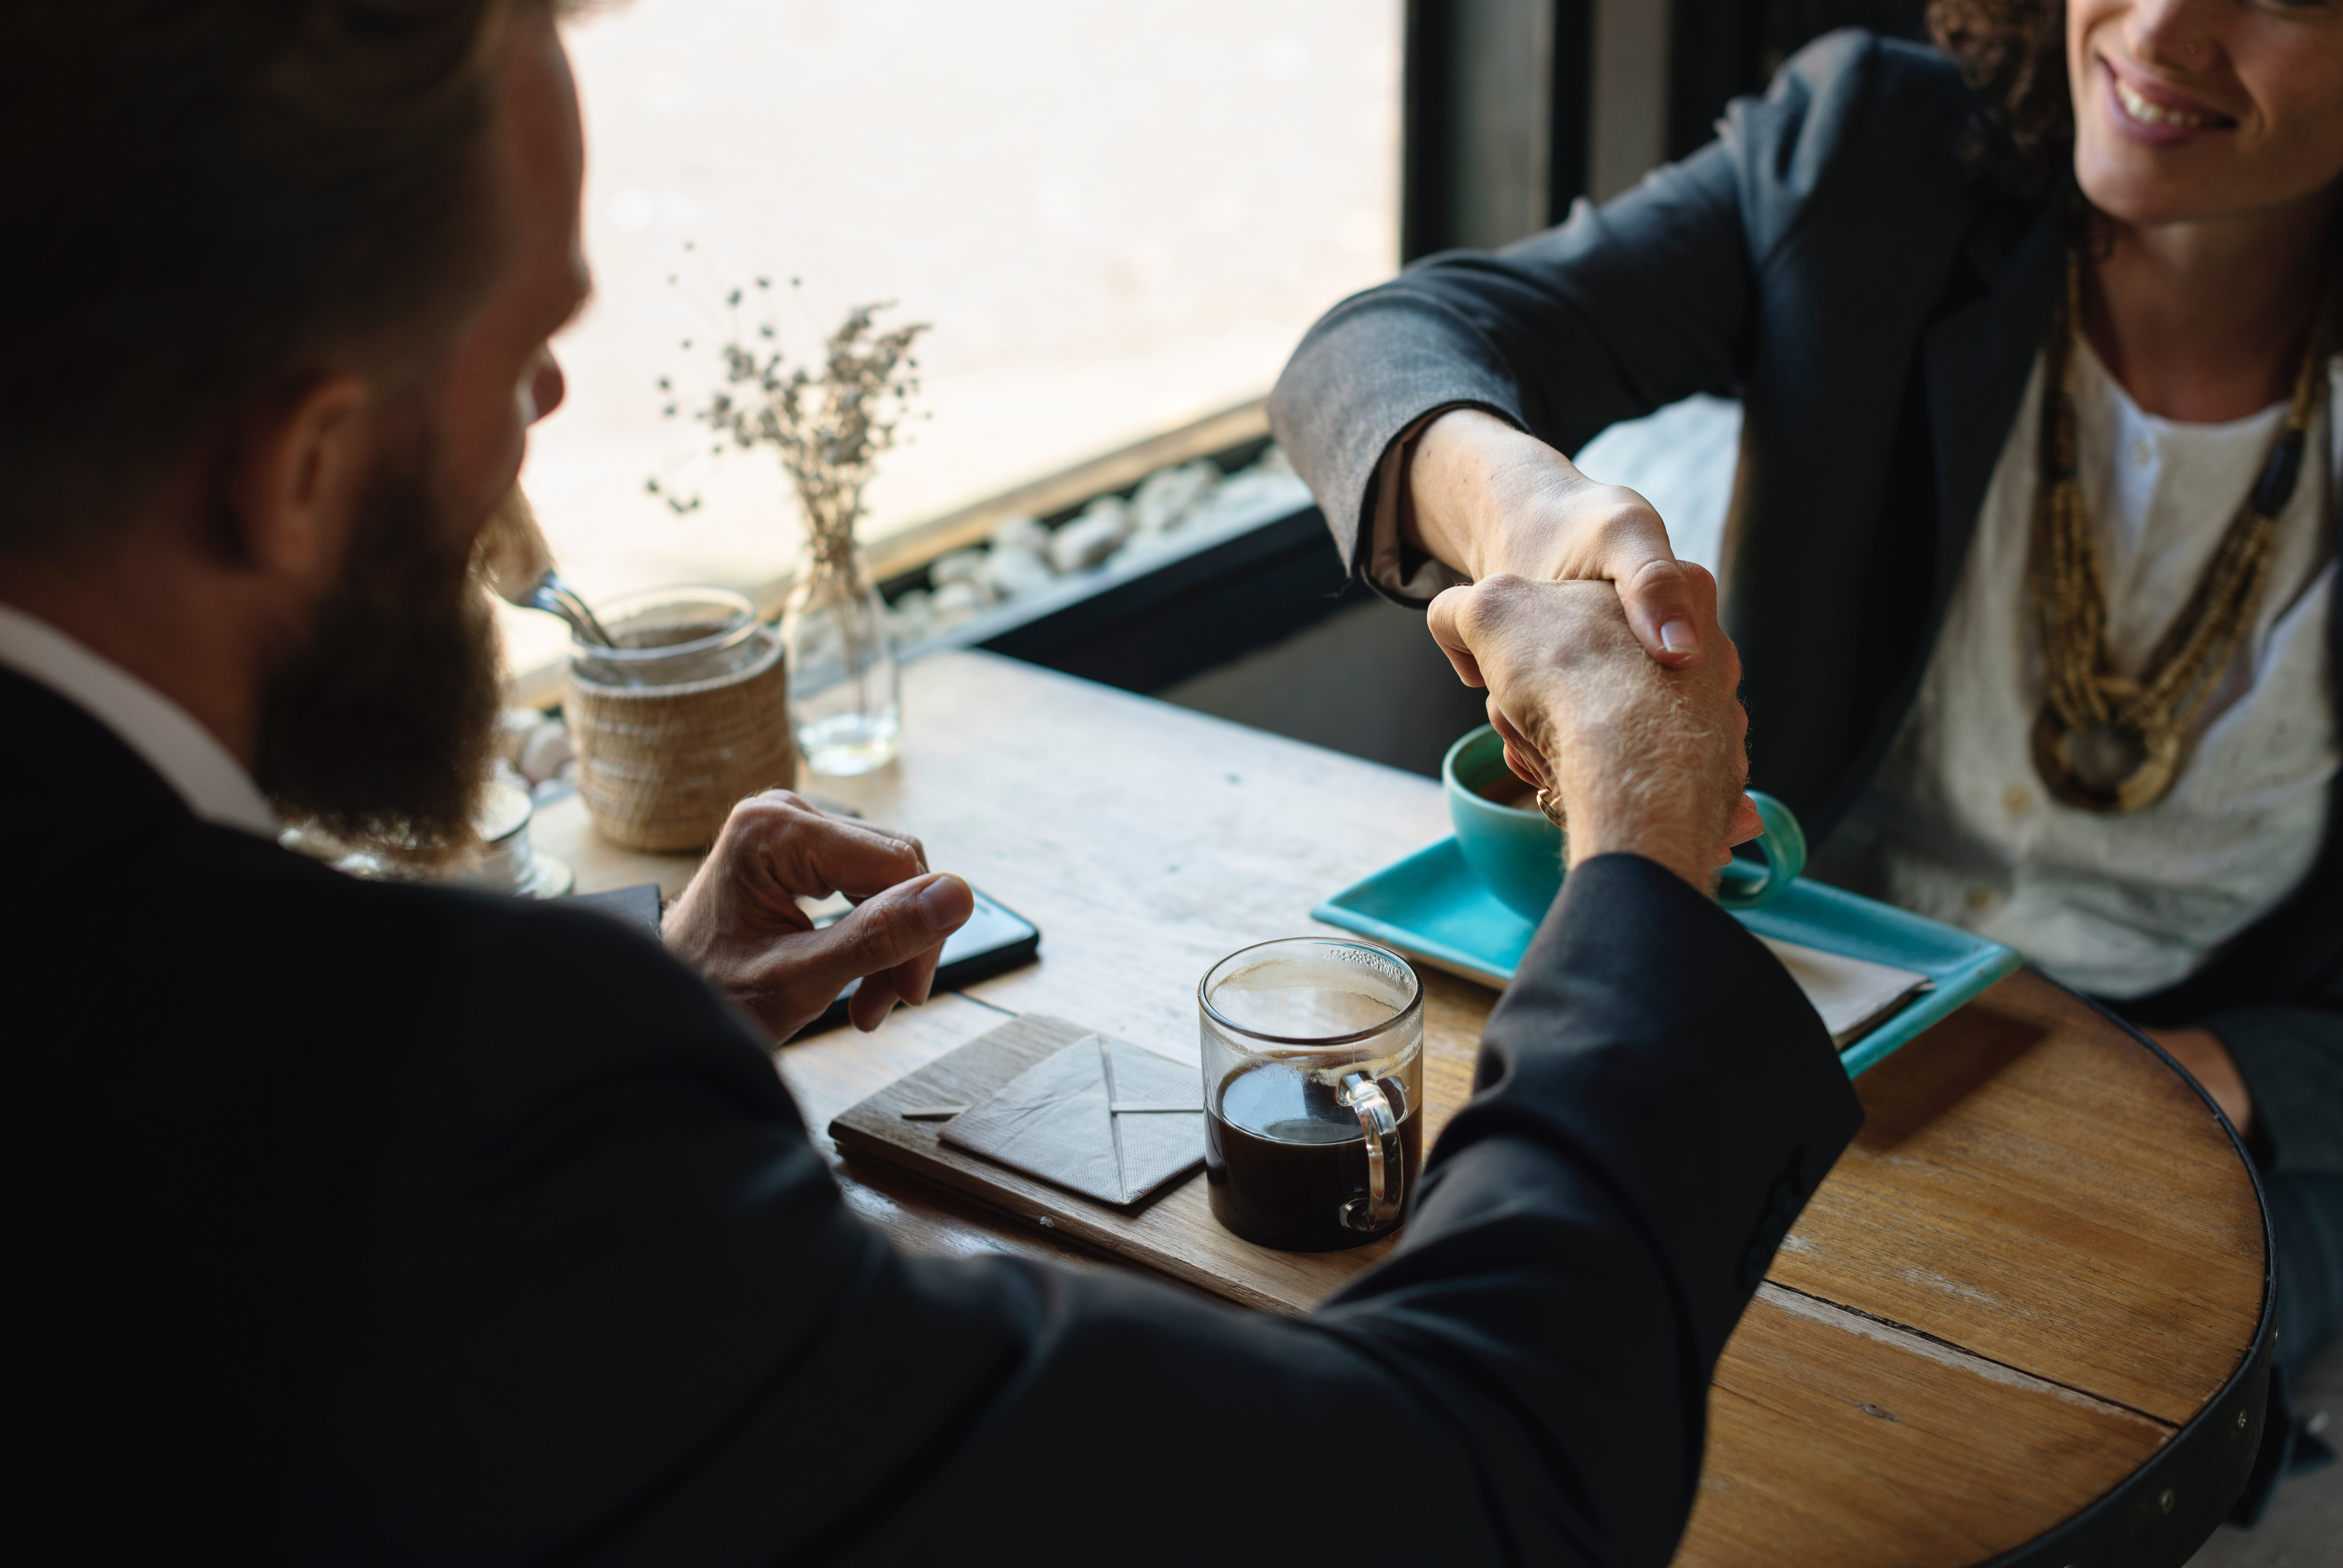 An SEO Services Company Reveals the Secret to Making the In-House + SEO Agency Relationship Work